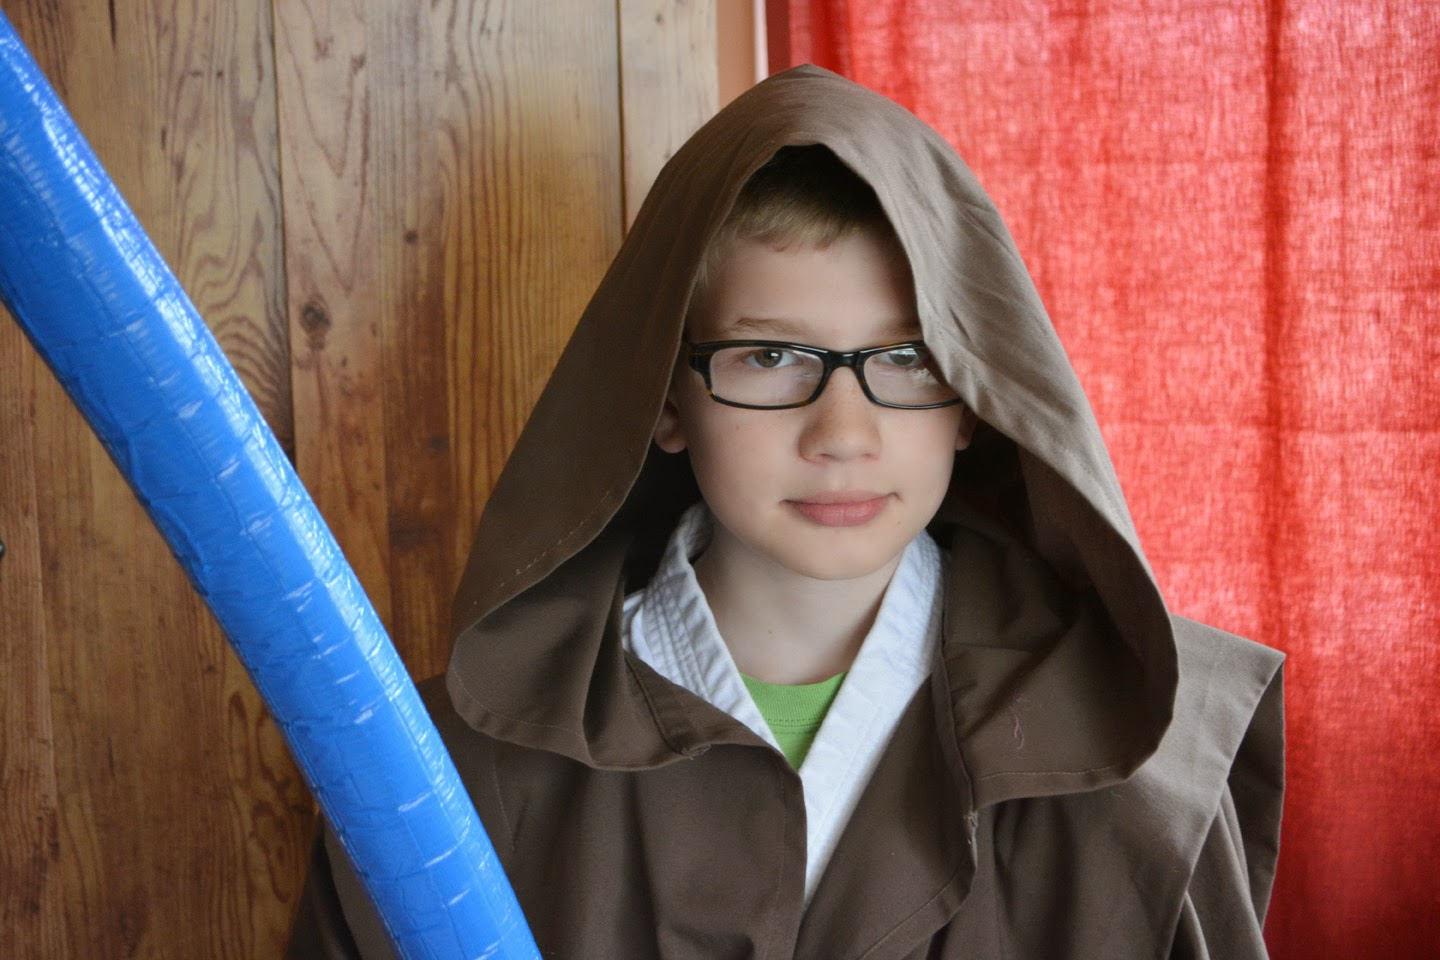 Jedi boy, blue light sabre